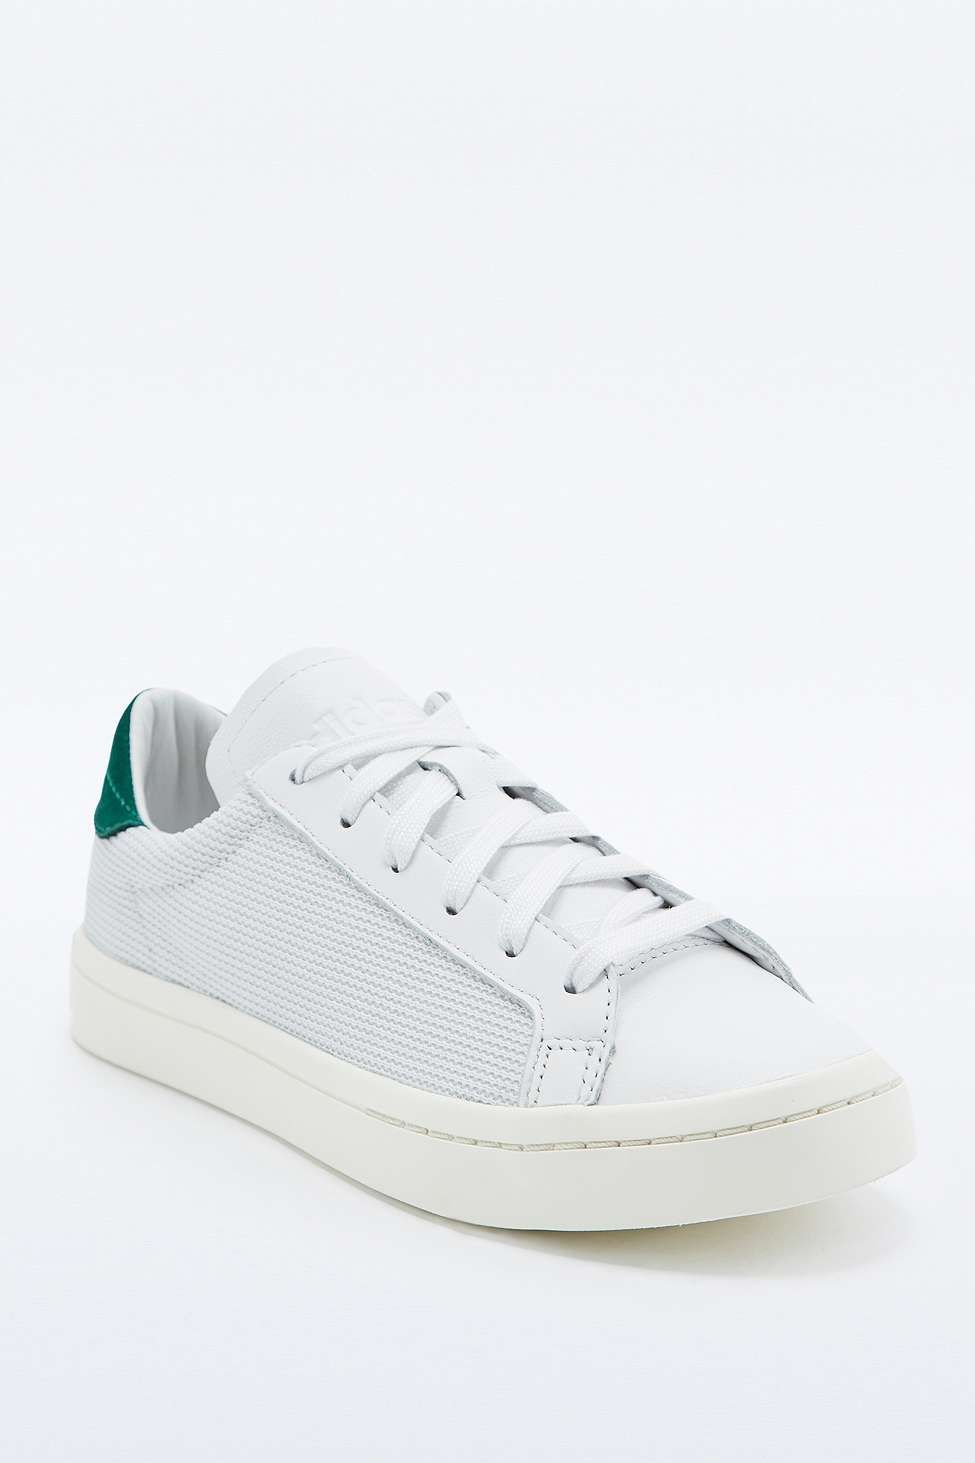 adidas Originals Court Vantage White and Green Nubuck Trainers - Urban  Outfitters